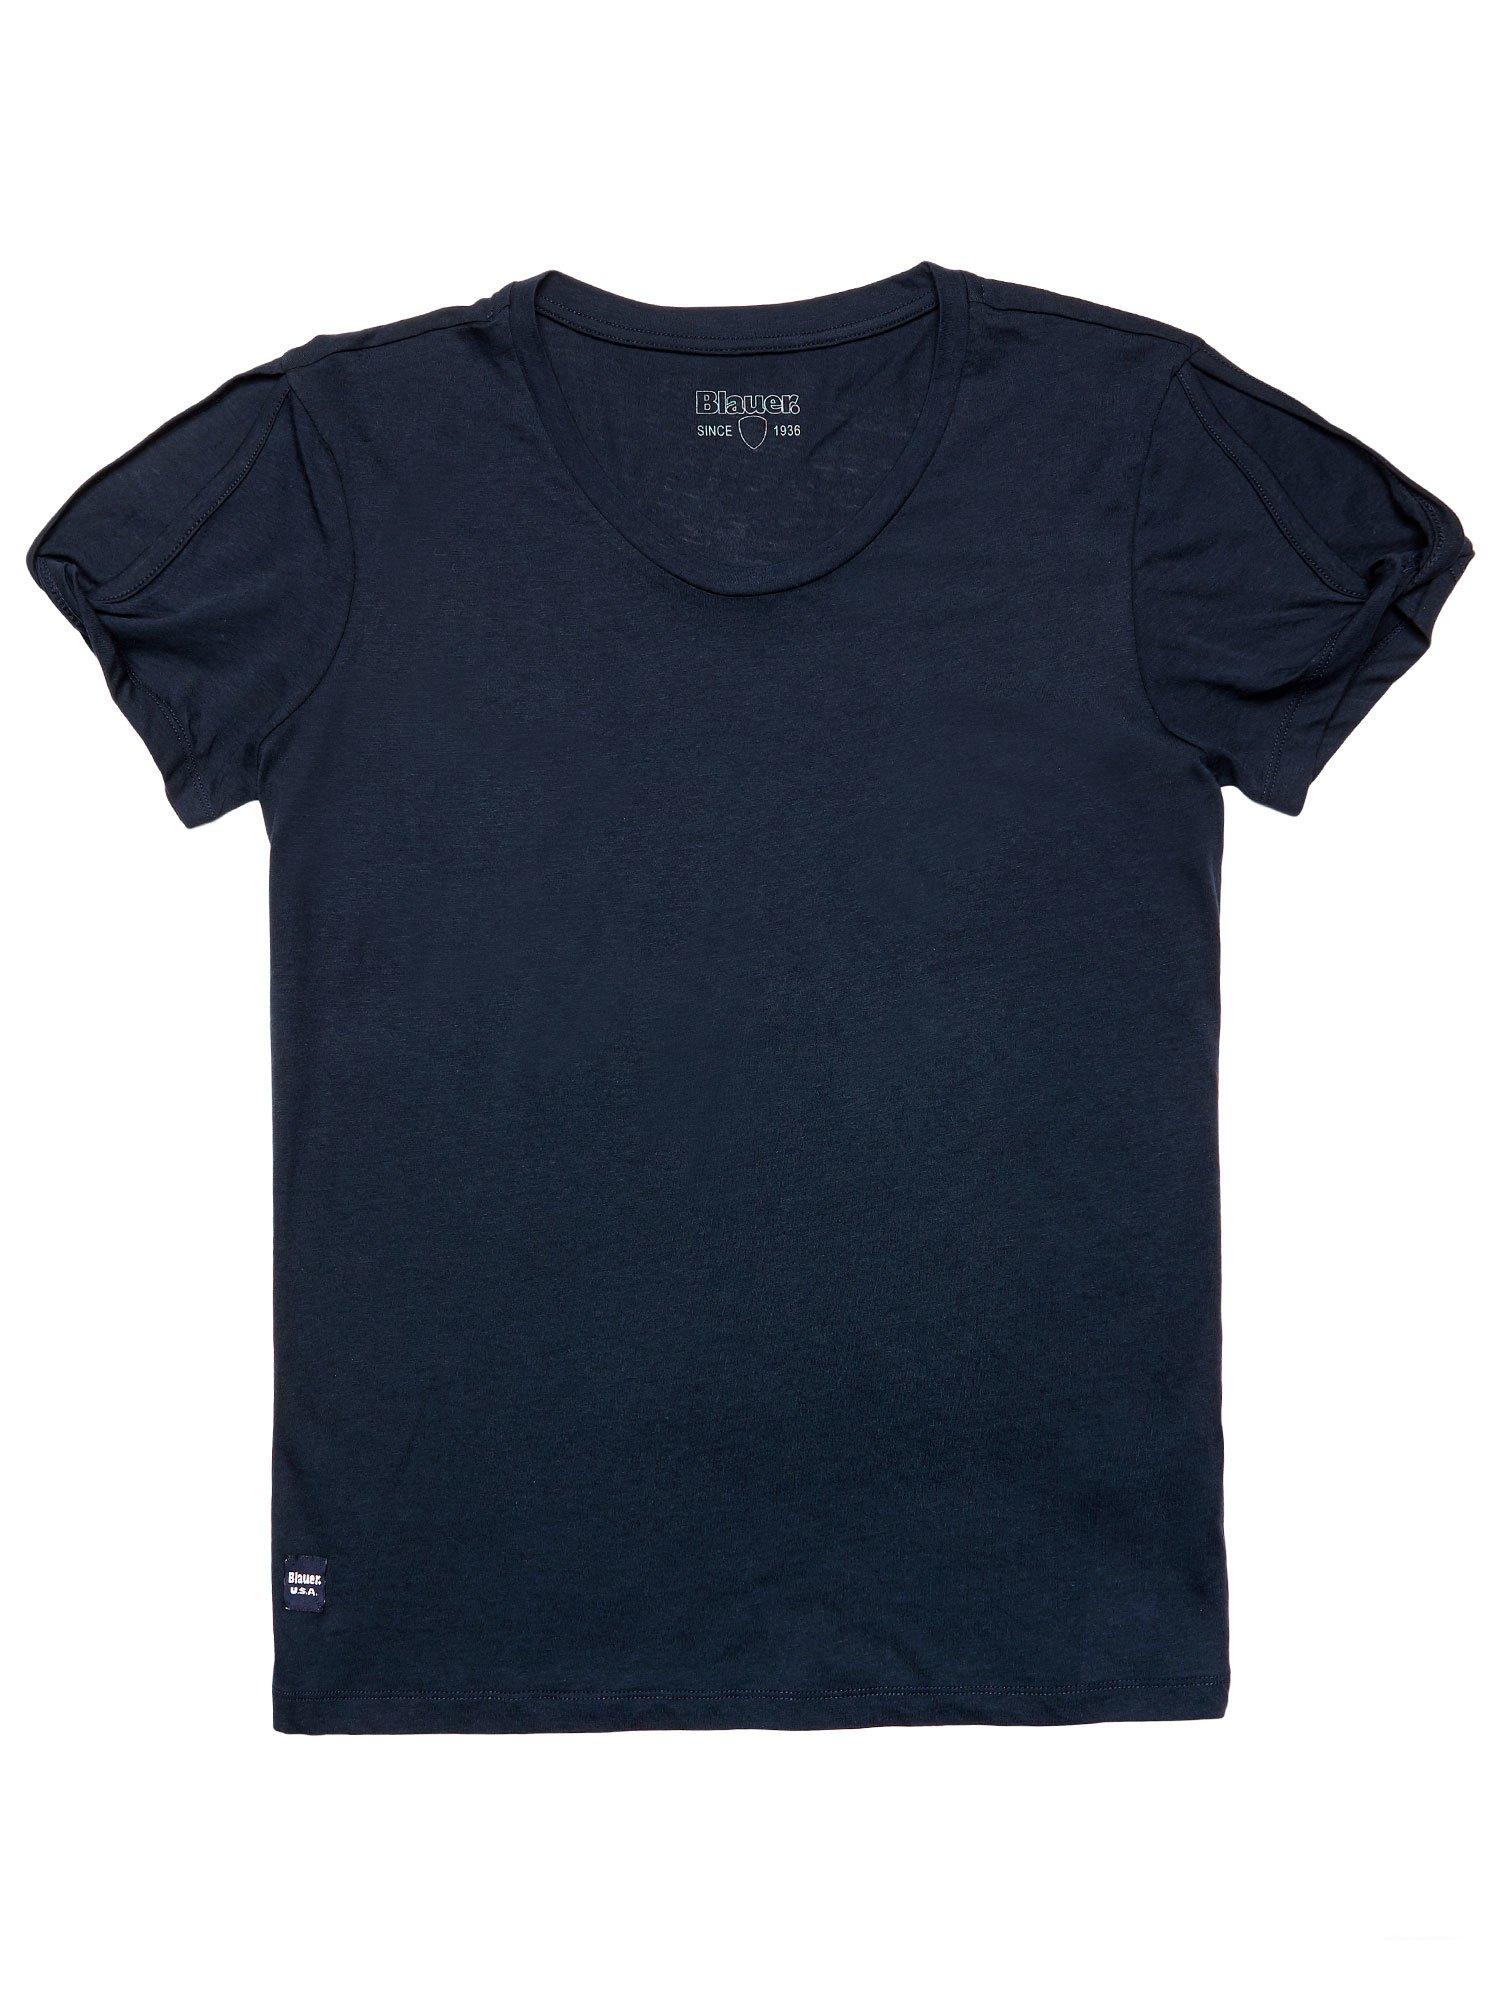 T-SHIRT BAUMWOLLE MODAL CUT OUT - Blauer